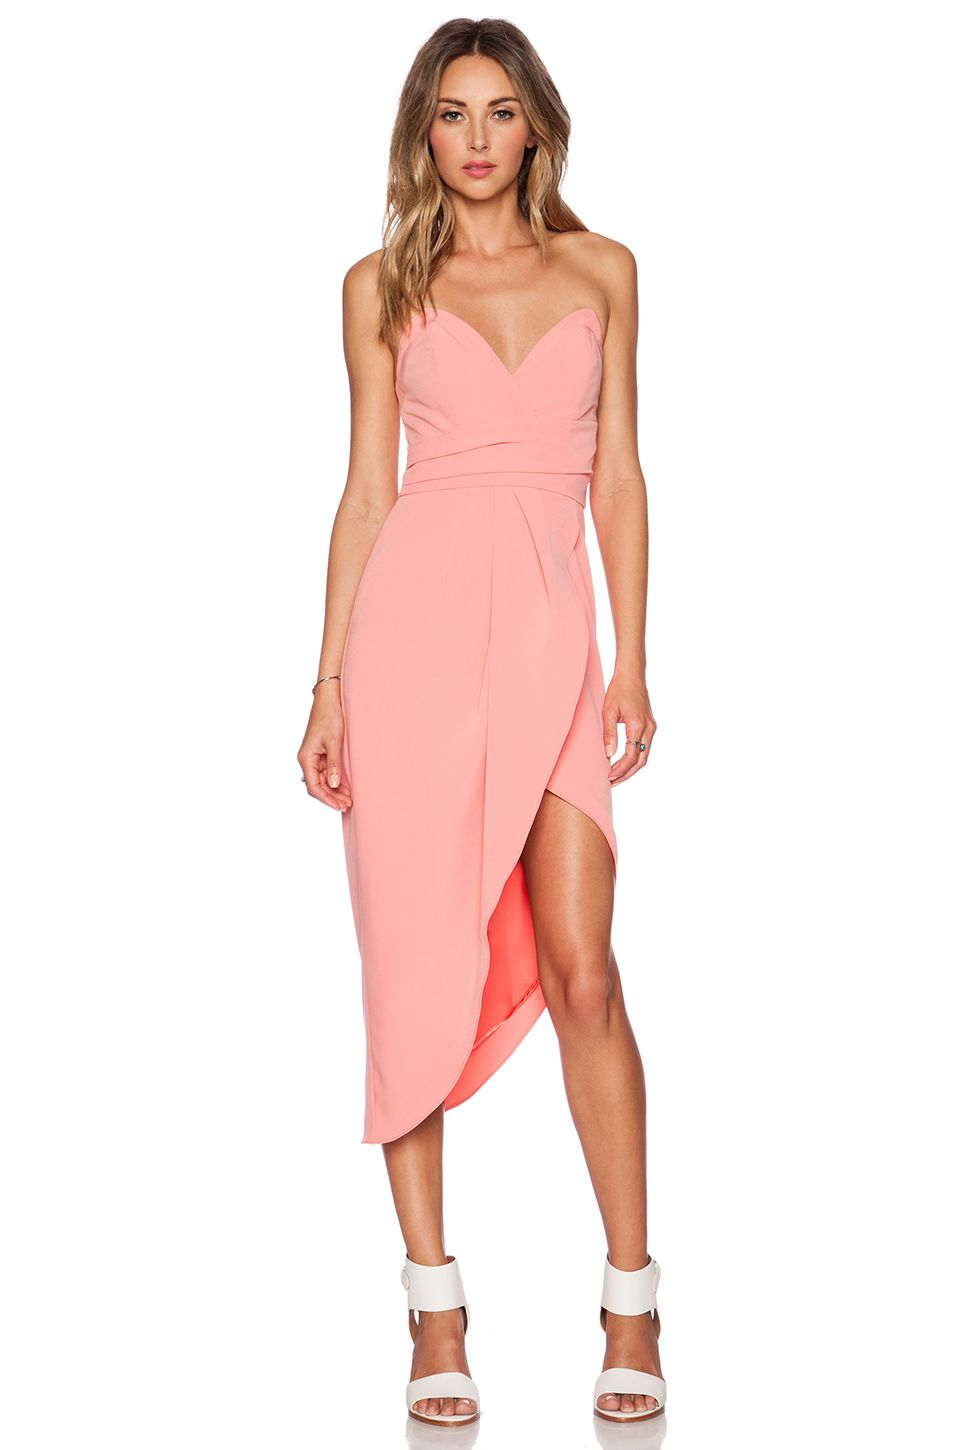 Lovers + Friends x REVOLVE Riviera Strapless Dress in Coral ...